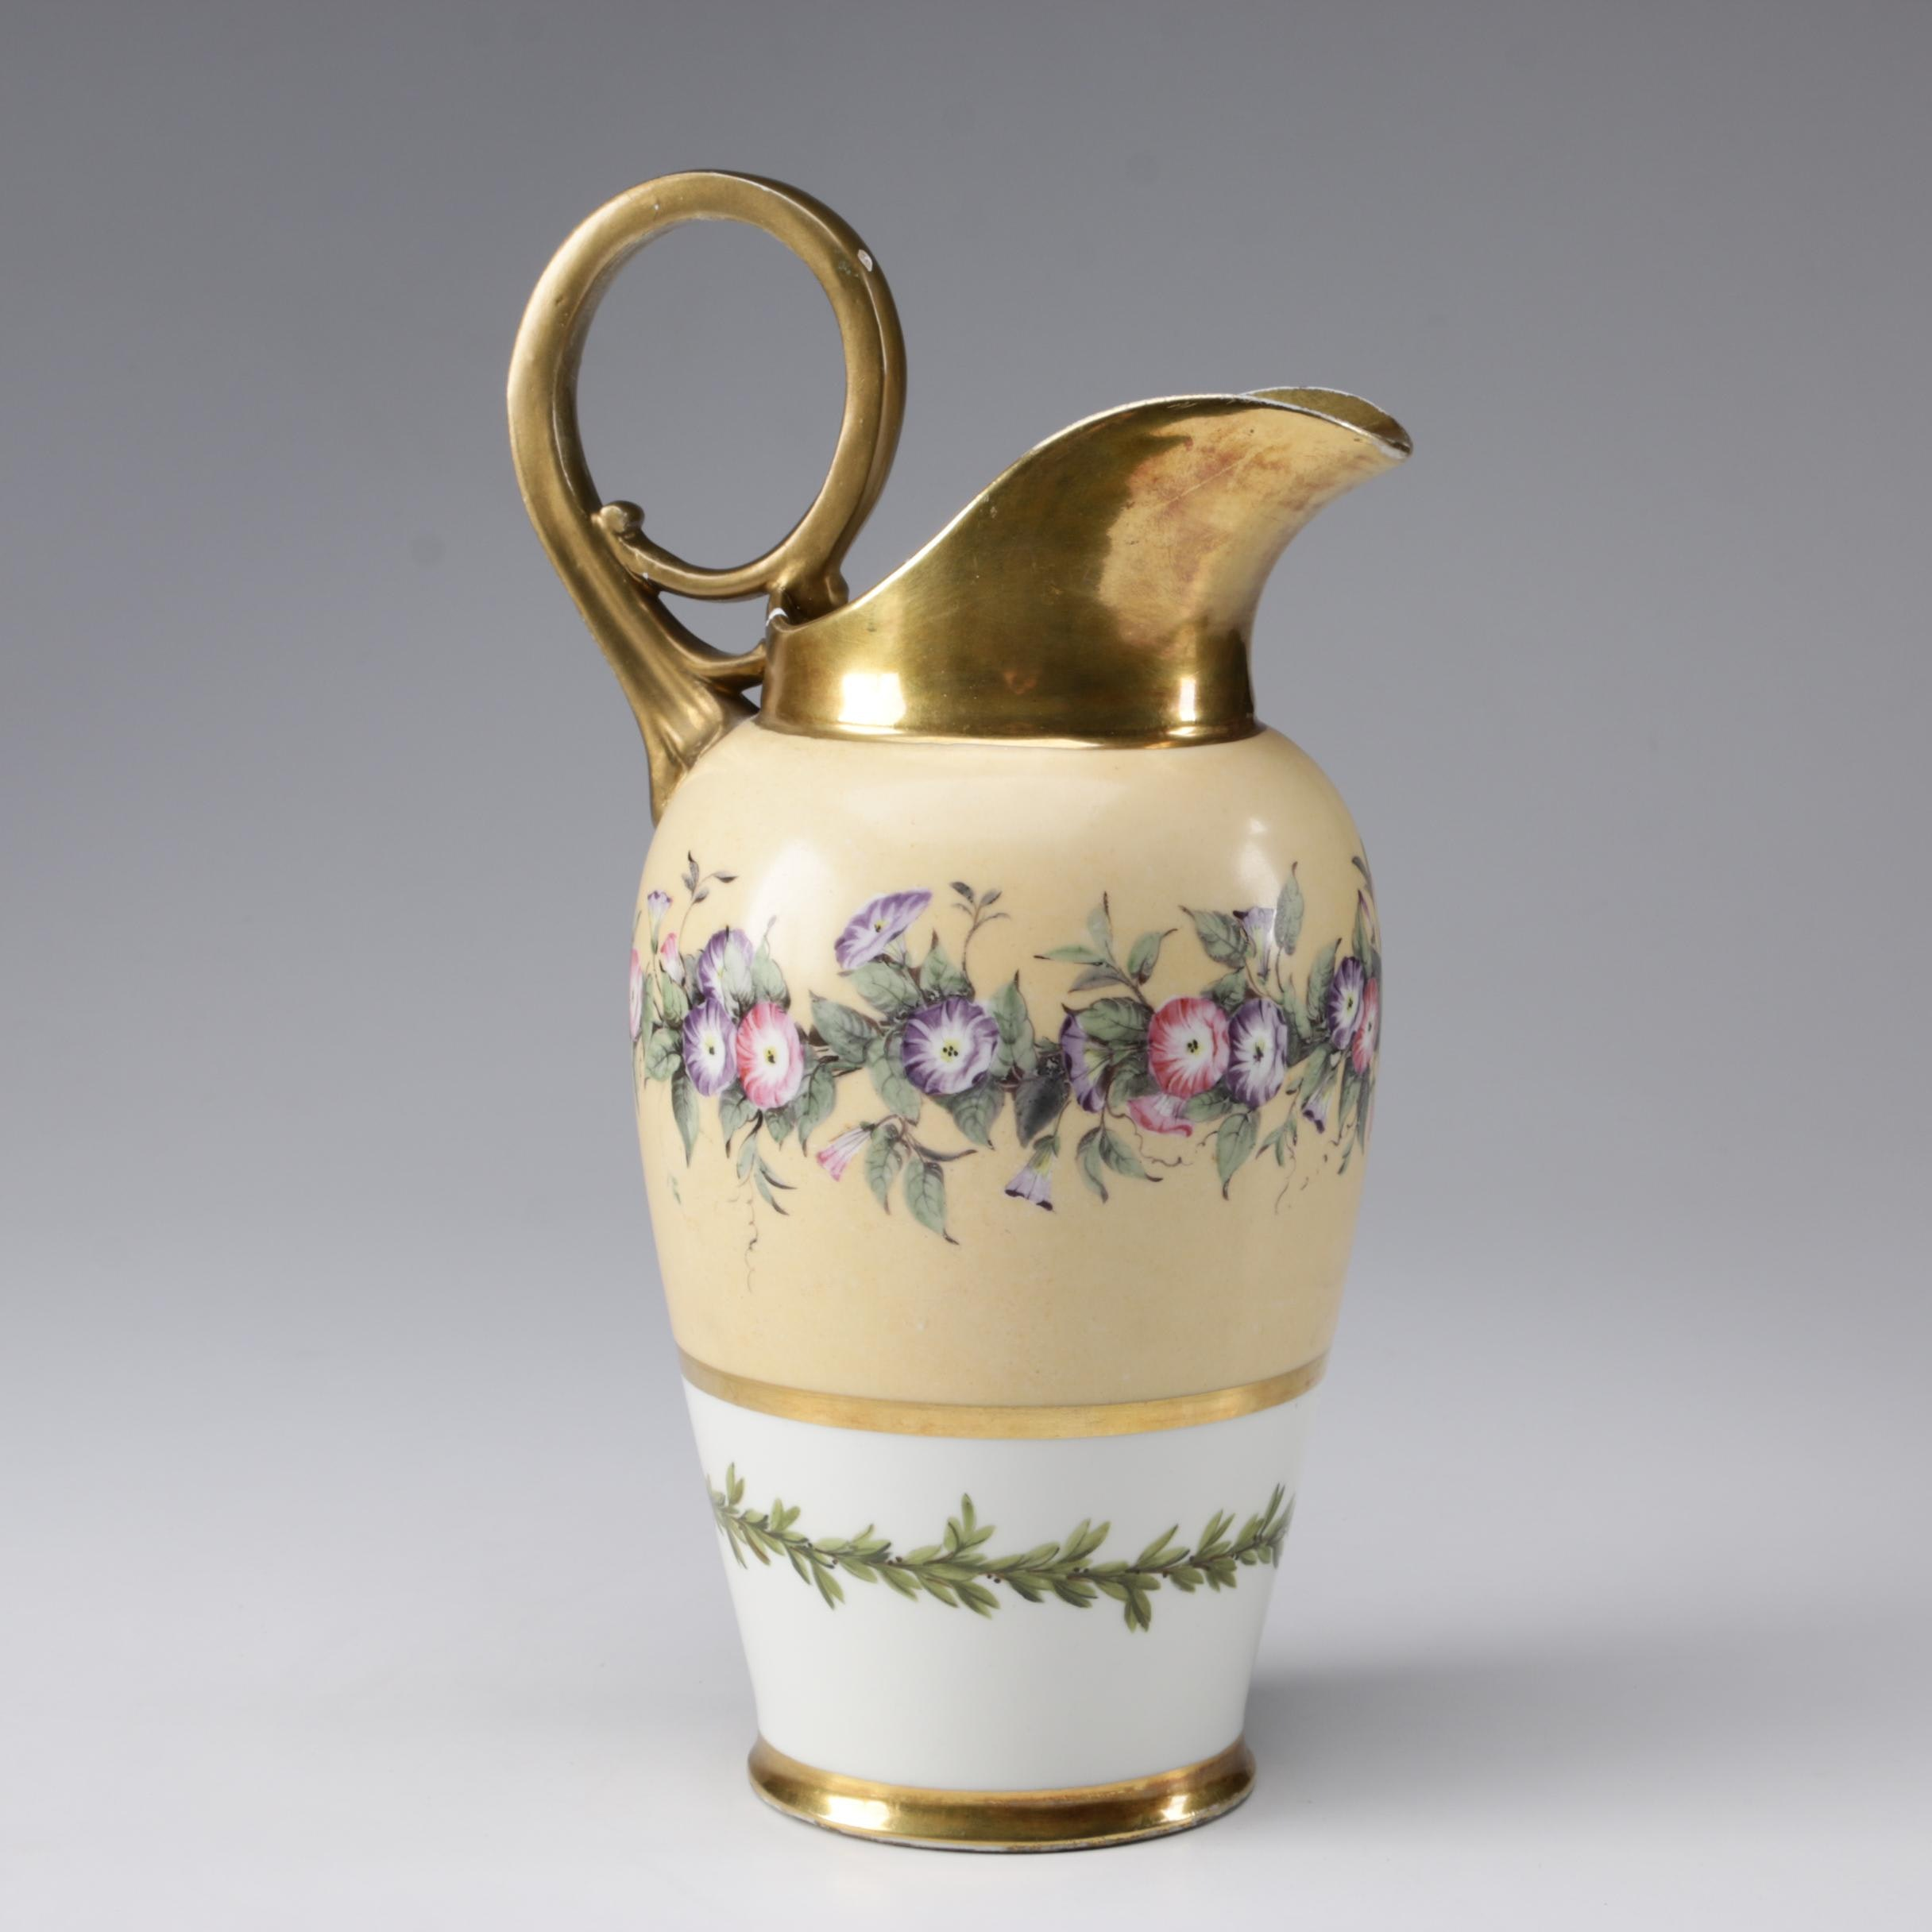 Gilded Yellow and White Porcelain Pitcher, Early 20th Century